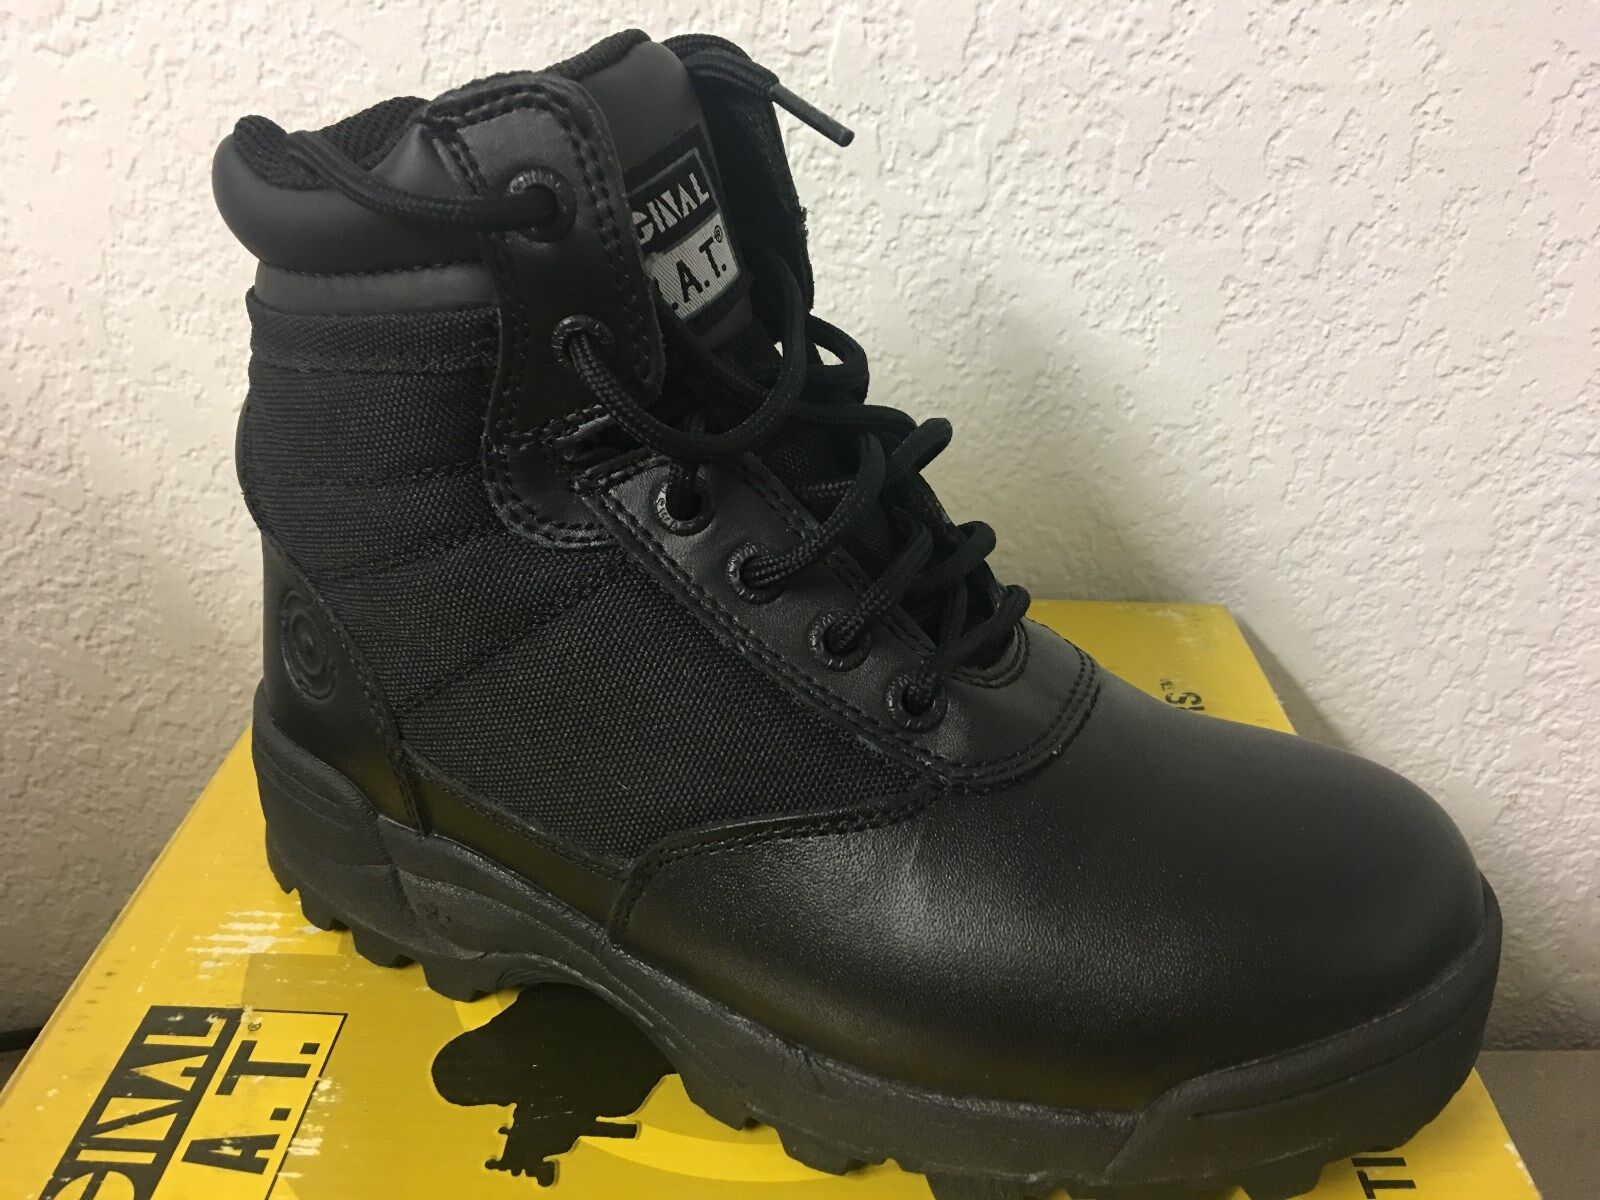 ORIGINAL SWAT TACTICAL BOOTS (BLK LEATHER, CLASSIC  6 ,WOMEN'S 6)  first-class service